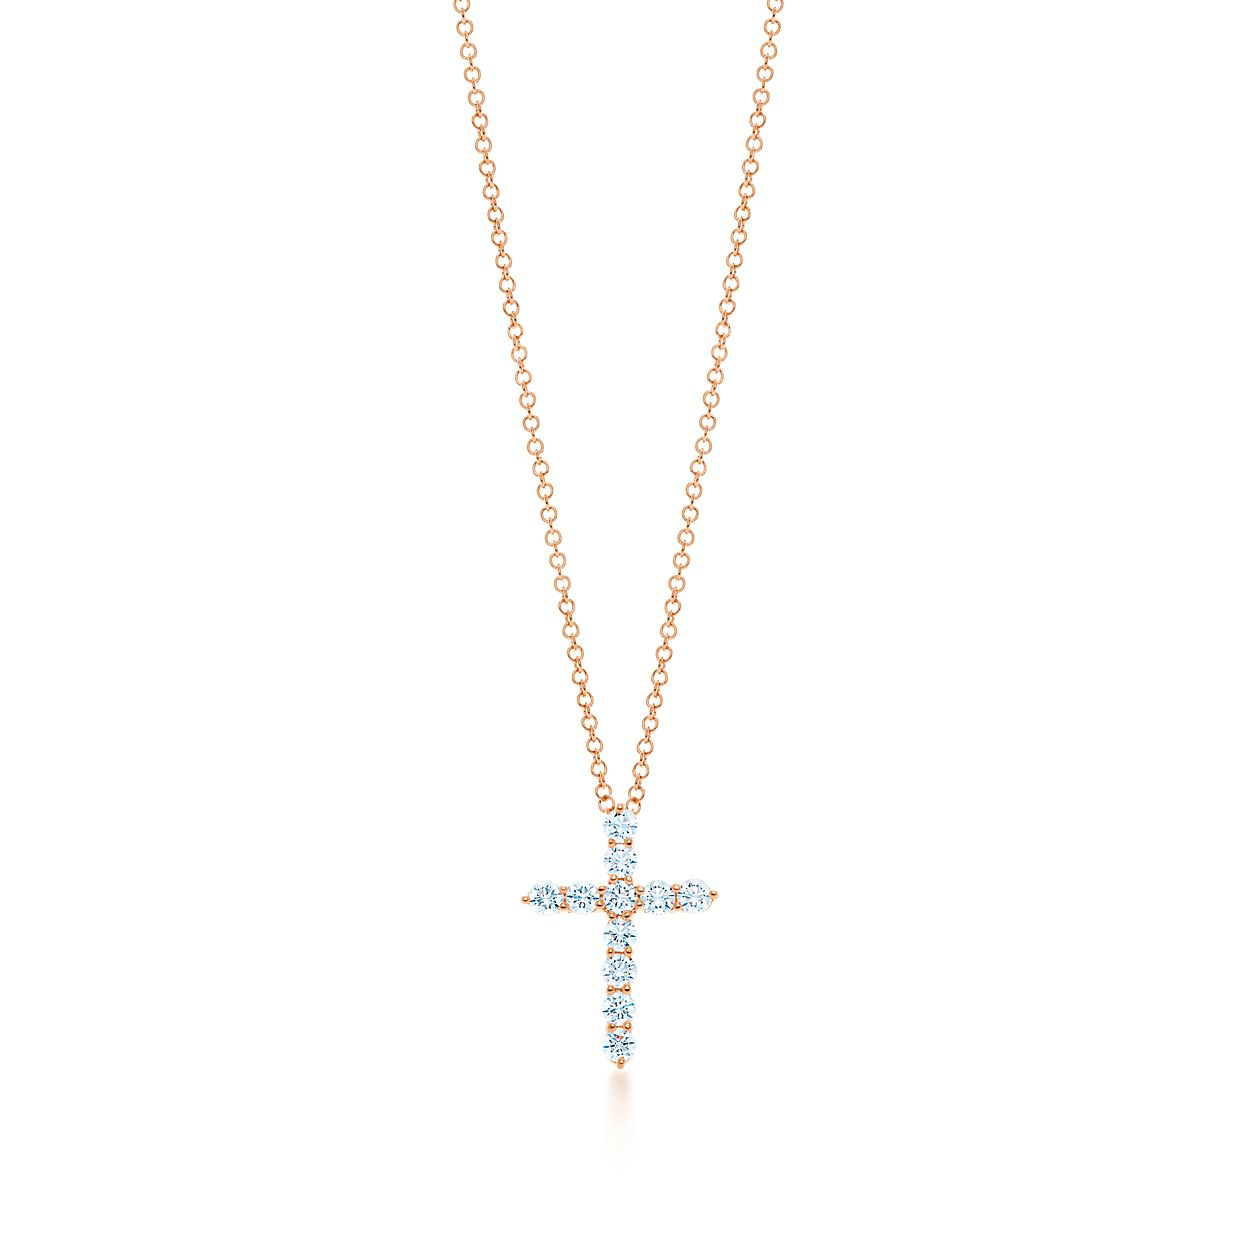 pendant nikki small rose gold from lissoni image necklaces jewellery set stone